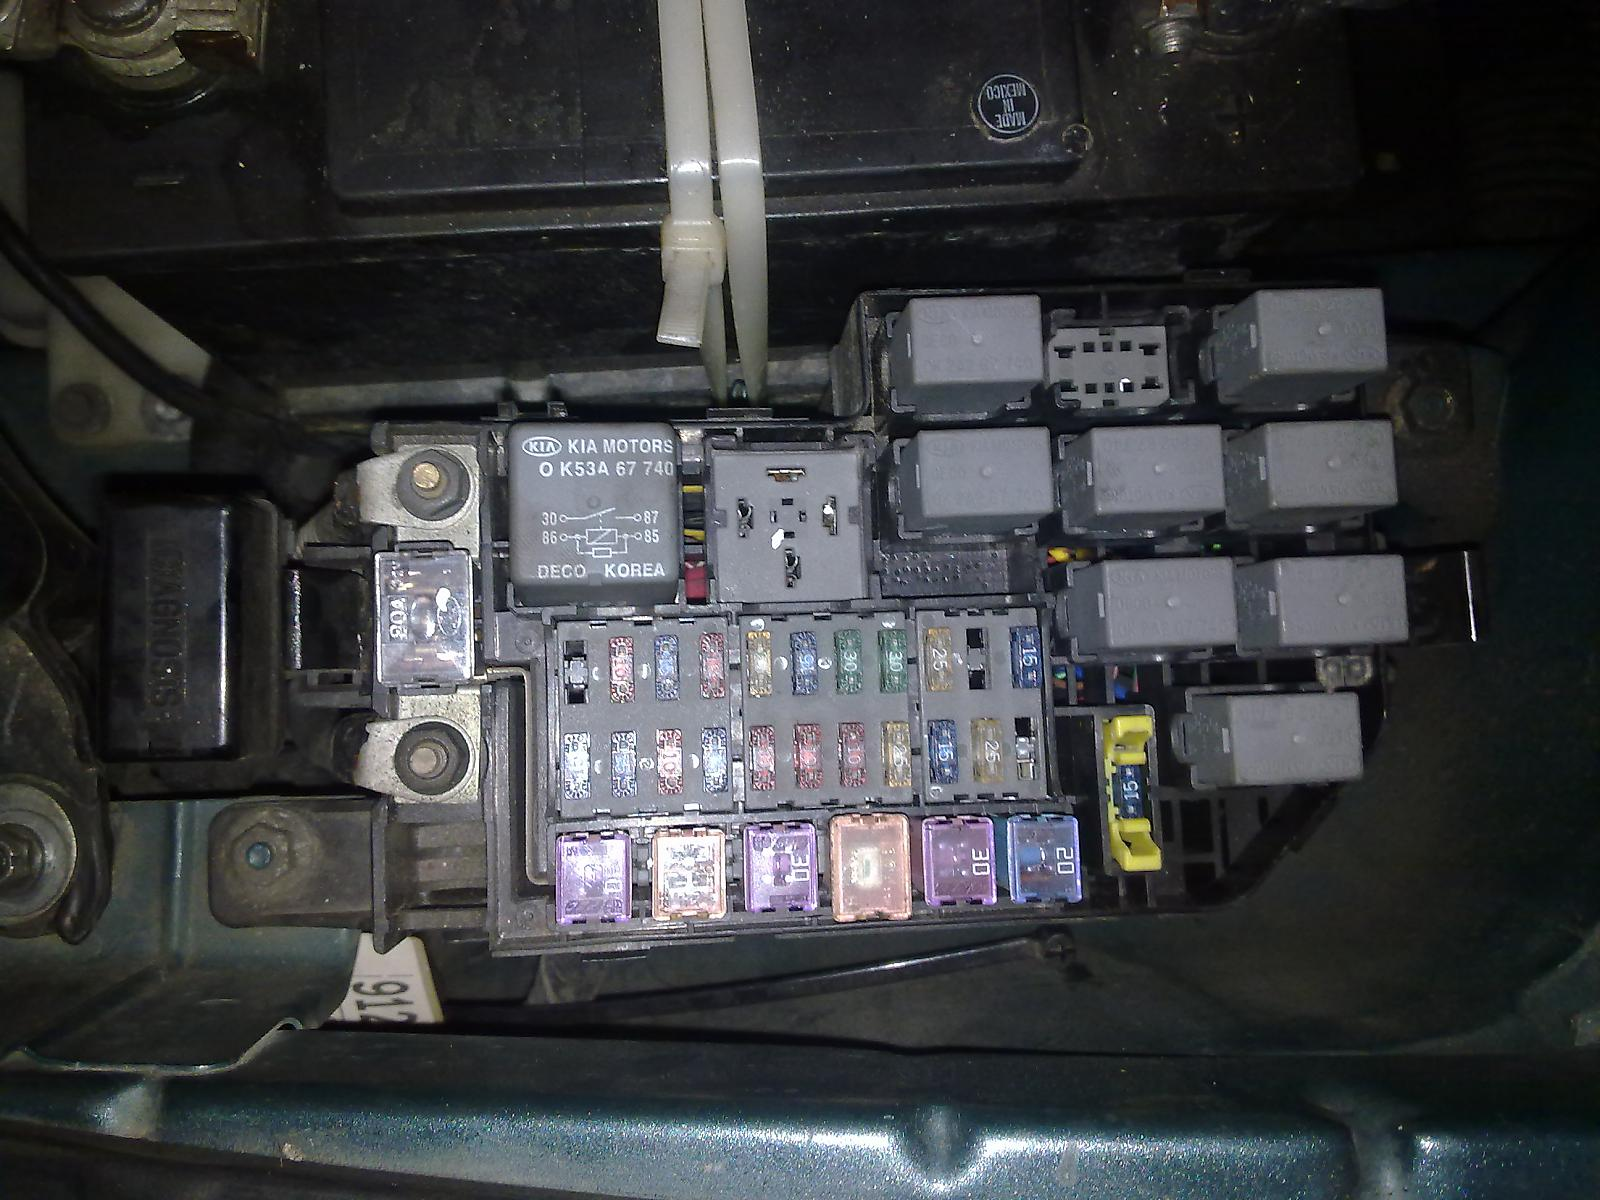 Fuse Box Kia Rio 2004 Reinvent Your Wiring Diagram Audio Going Beserk And Flatened The Battery Page 2 Rh Forums Com Panel Amanti 2012 Soul